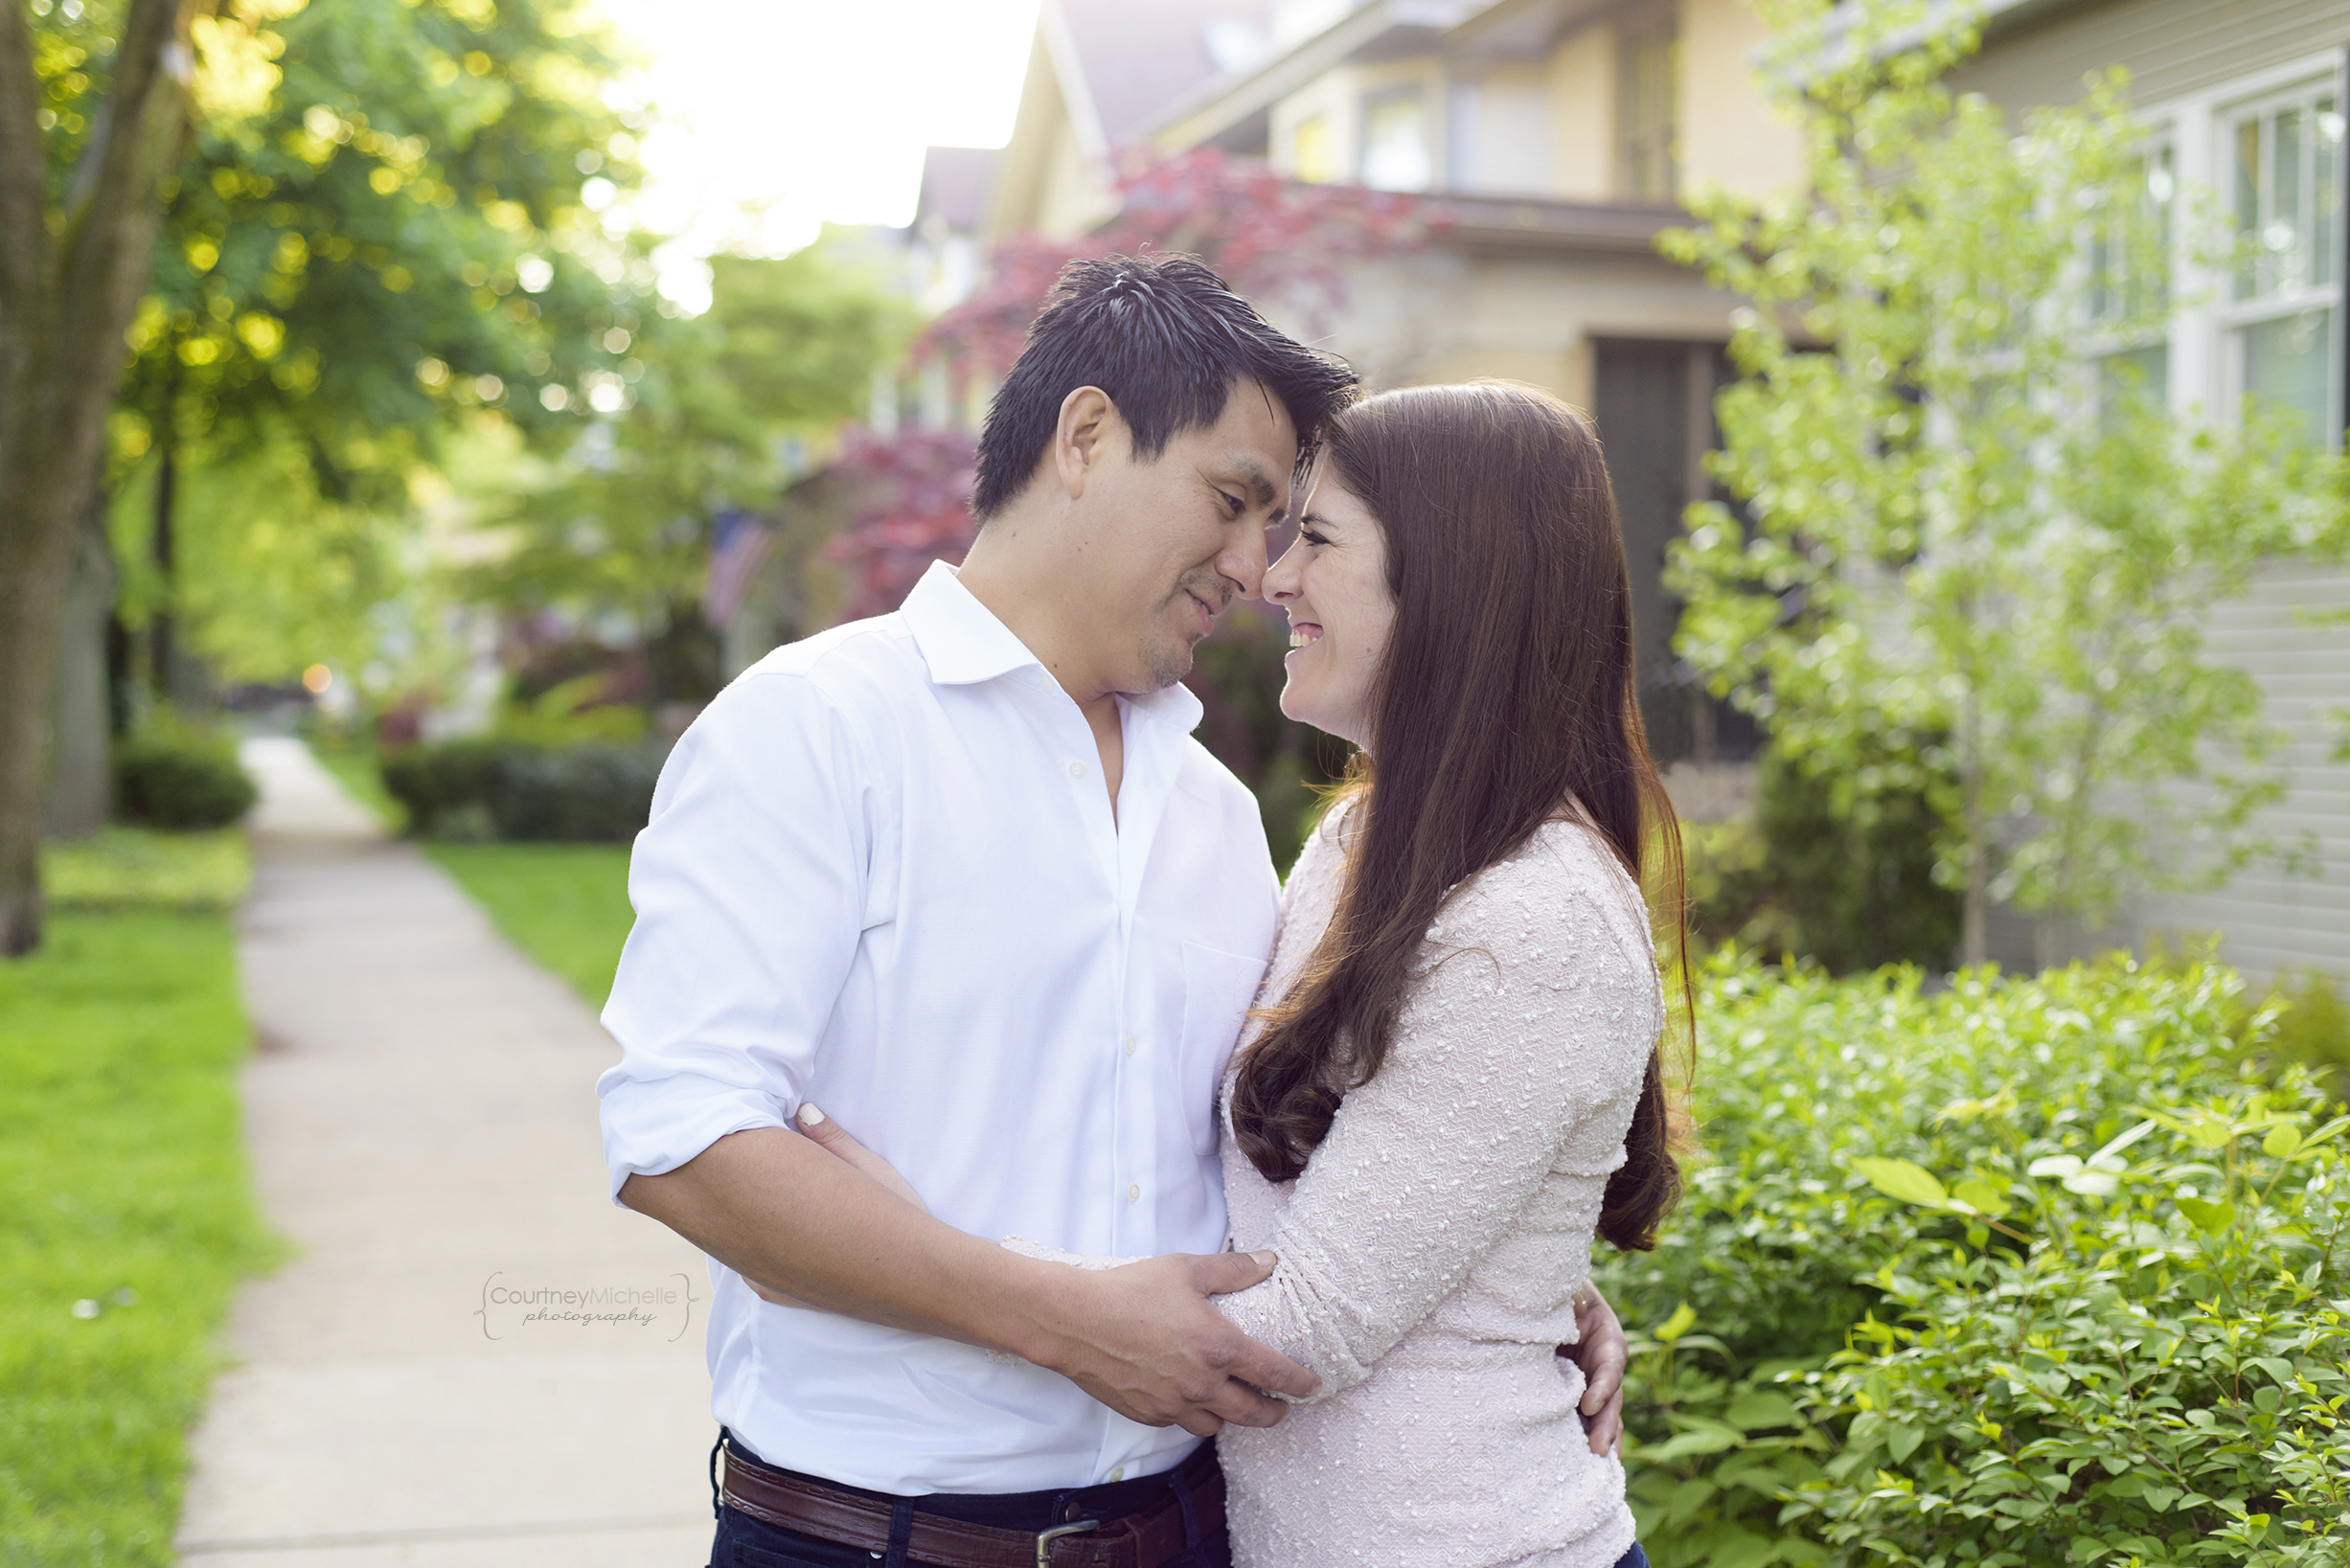 north-center-chicago-engagement-photography-by-courtney-laper©COPYRIGHTCMP-edit-1217.jpg